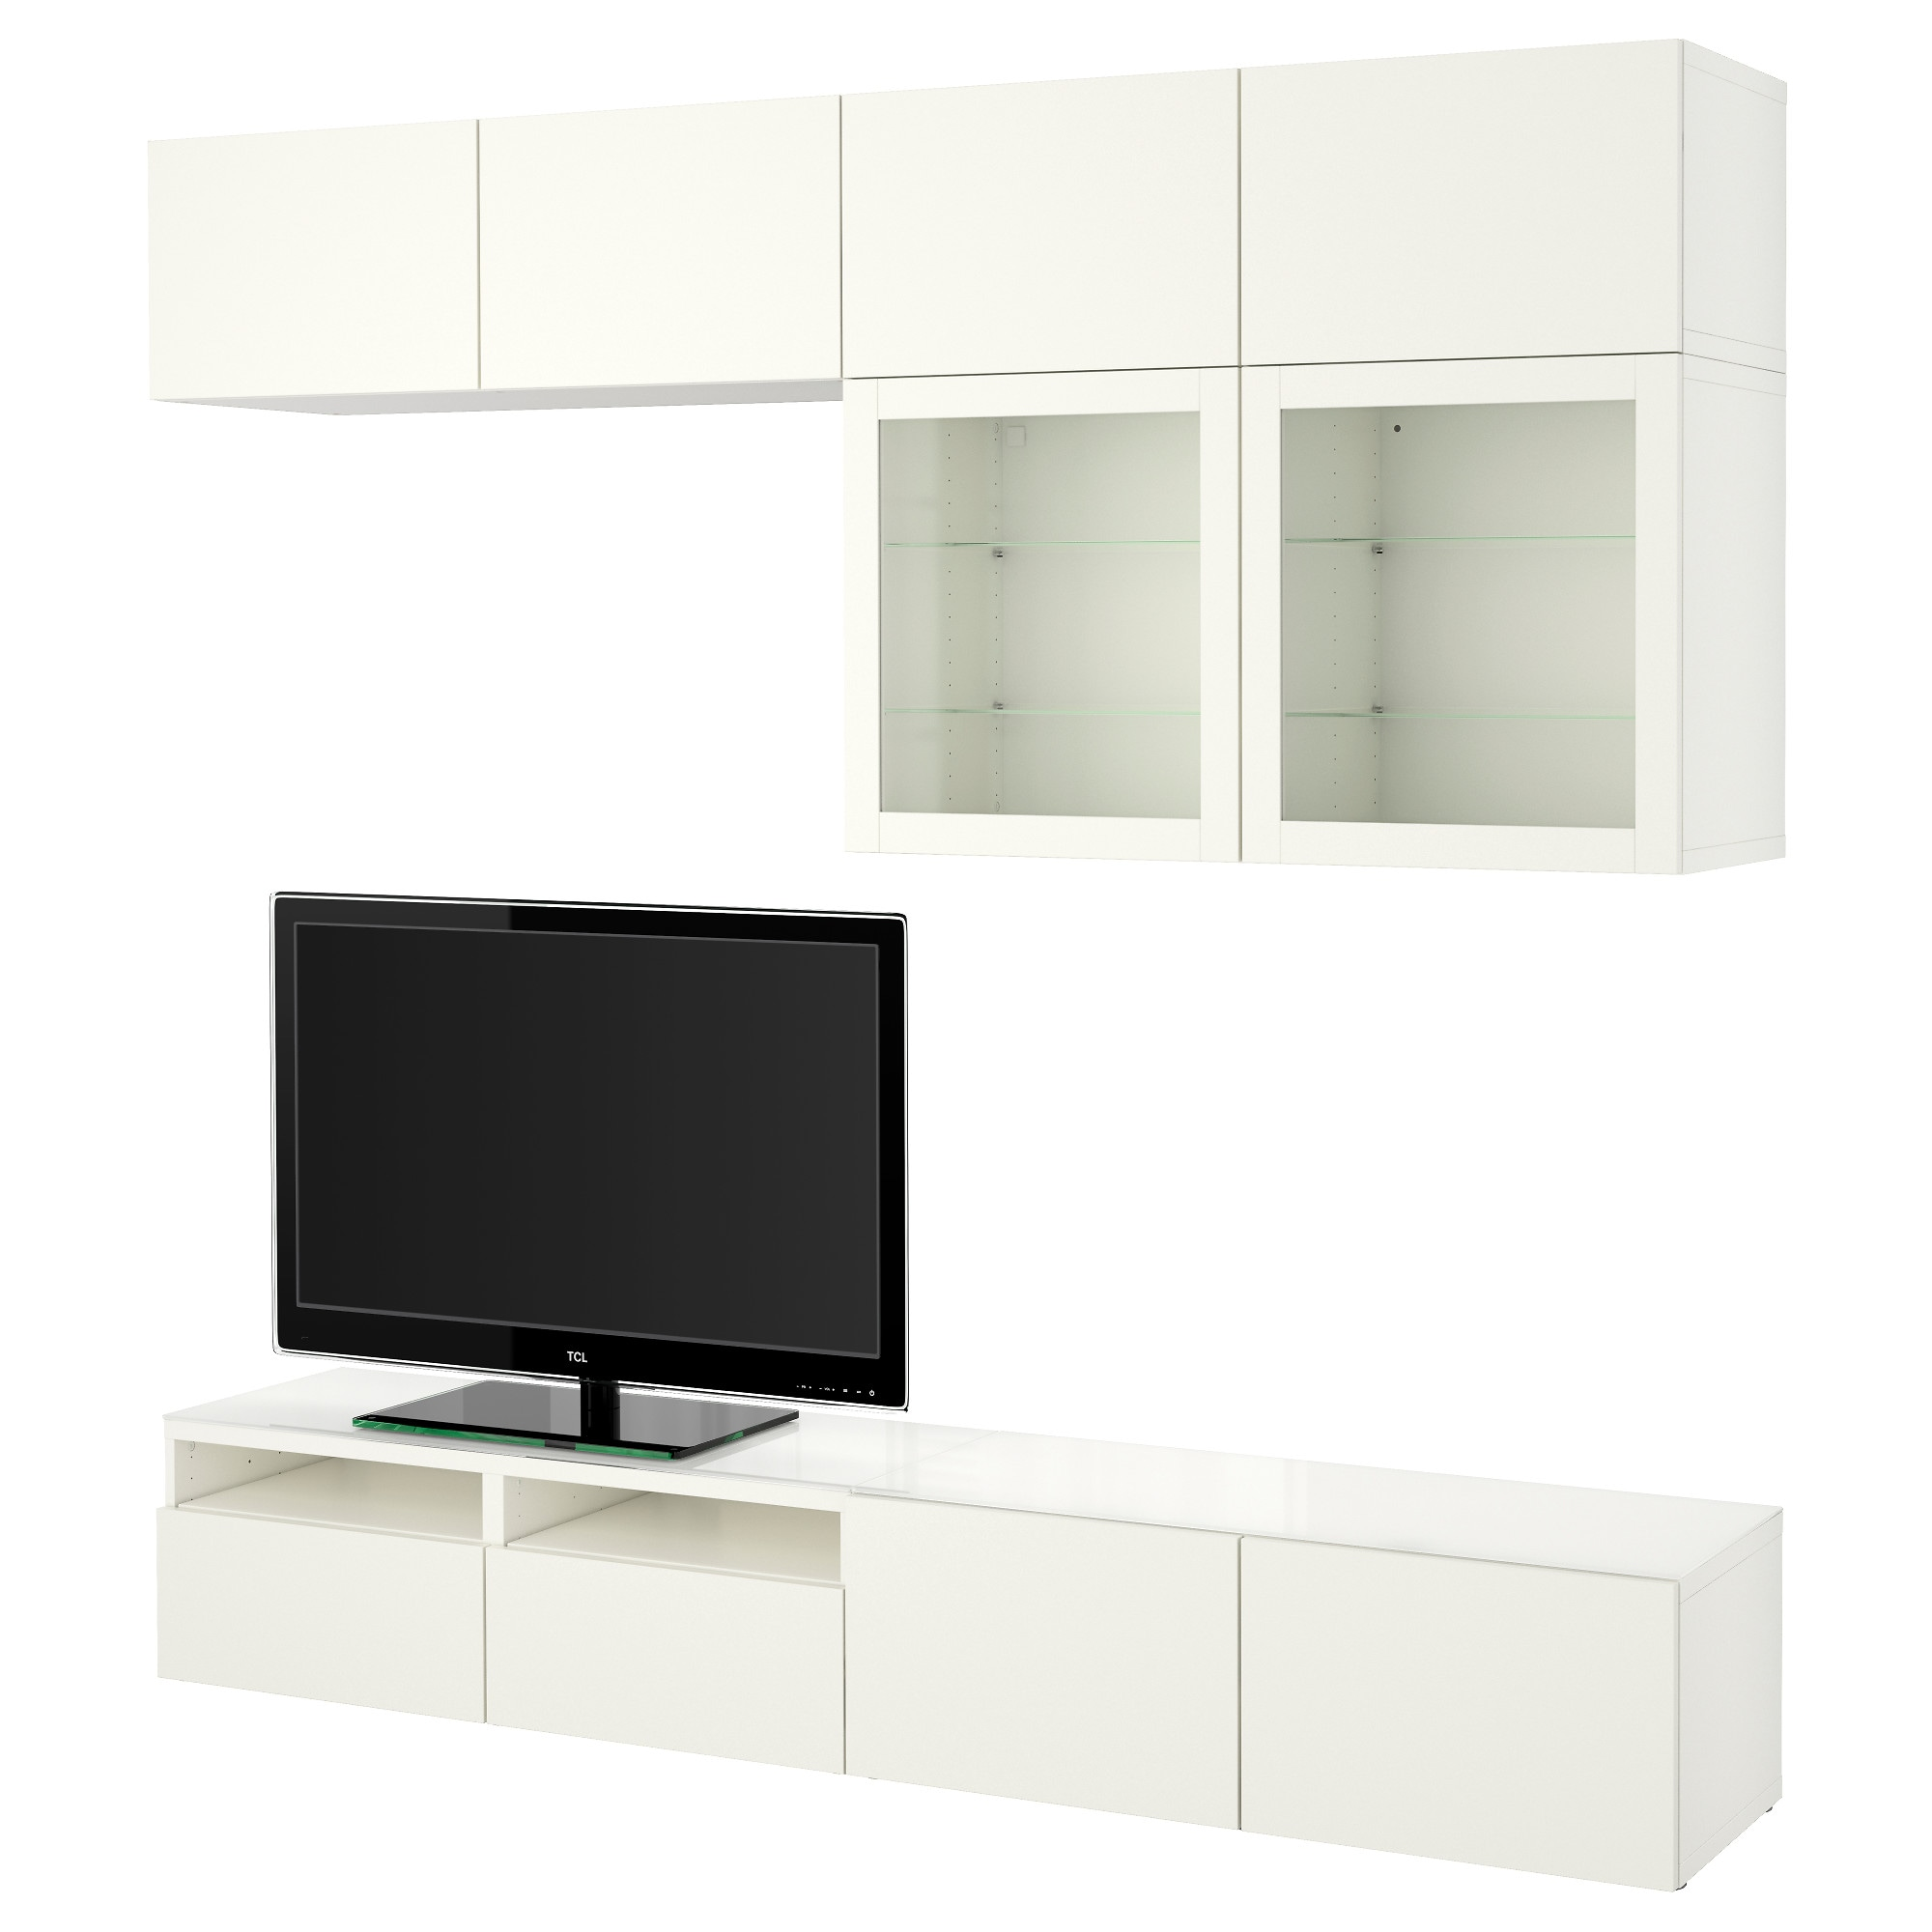 ikea hemnes bookcase gray brown with Ikea Bookcase Entertainment Center on Ikea Brown as well Diy Design Ideas as well 141268732117 further Bookmark moreover 10 Built In Ikea Hacks To Make Your Jaw Drop.